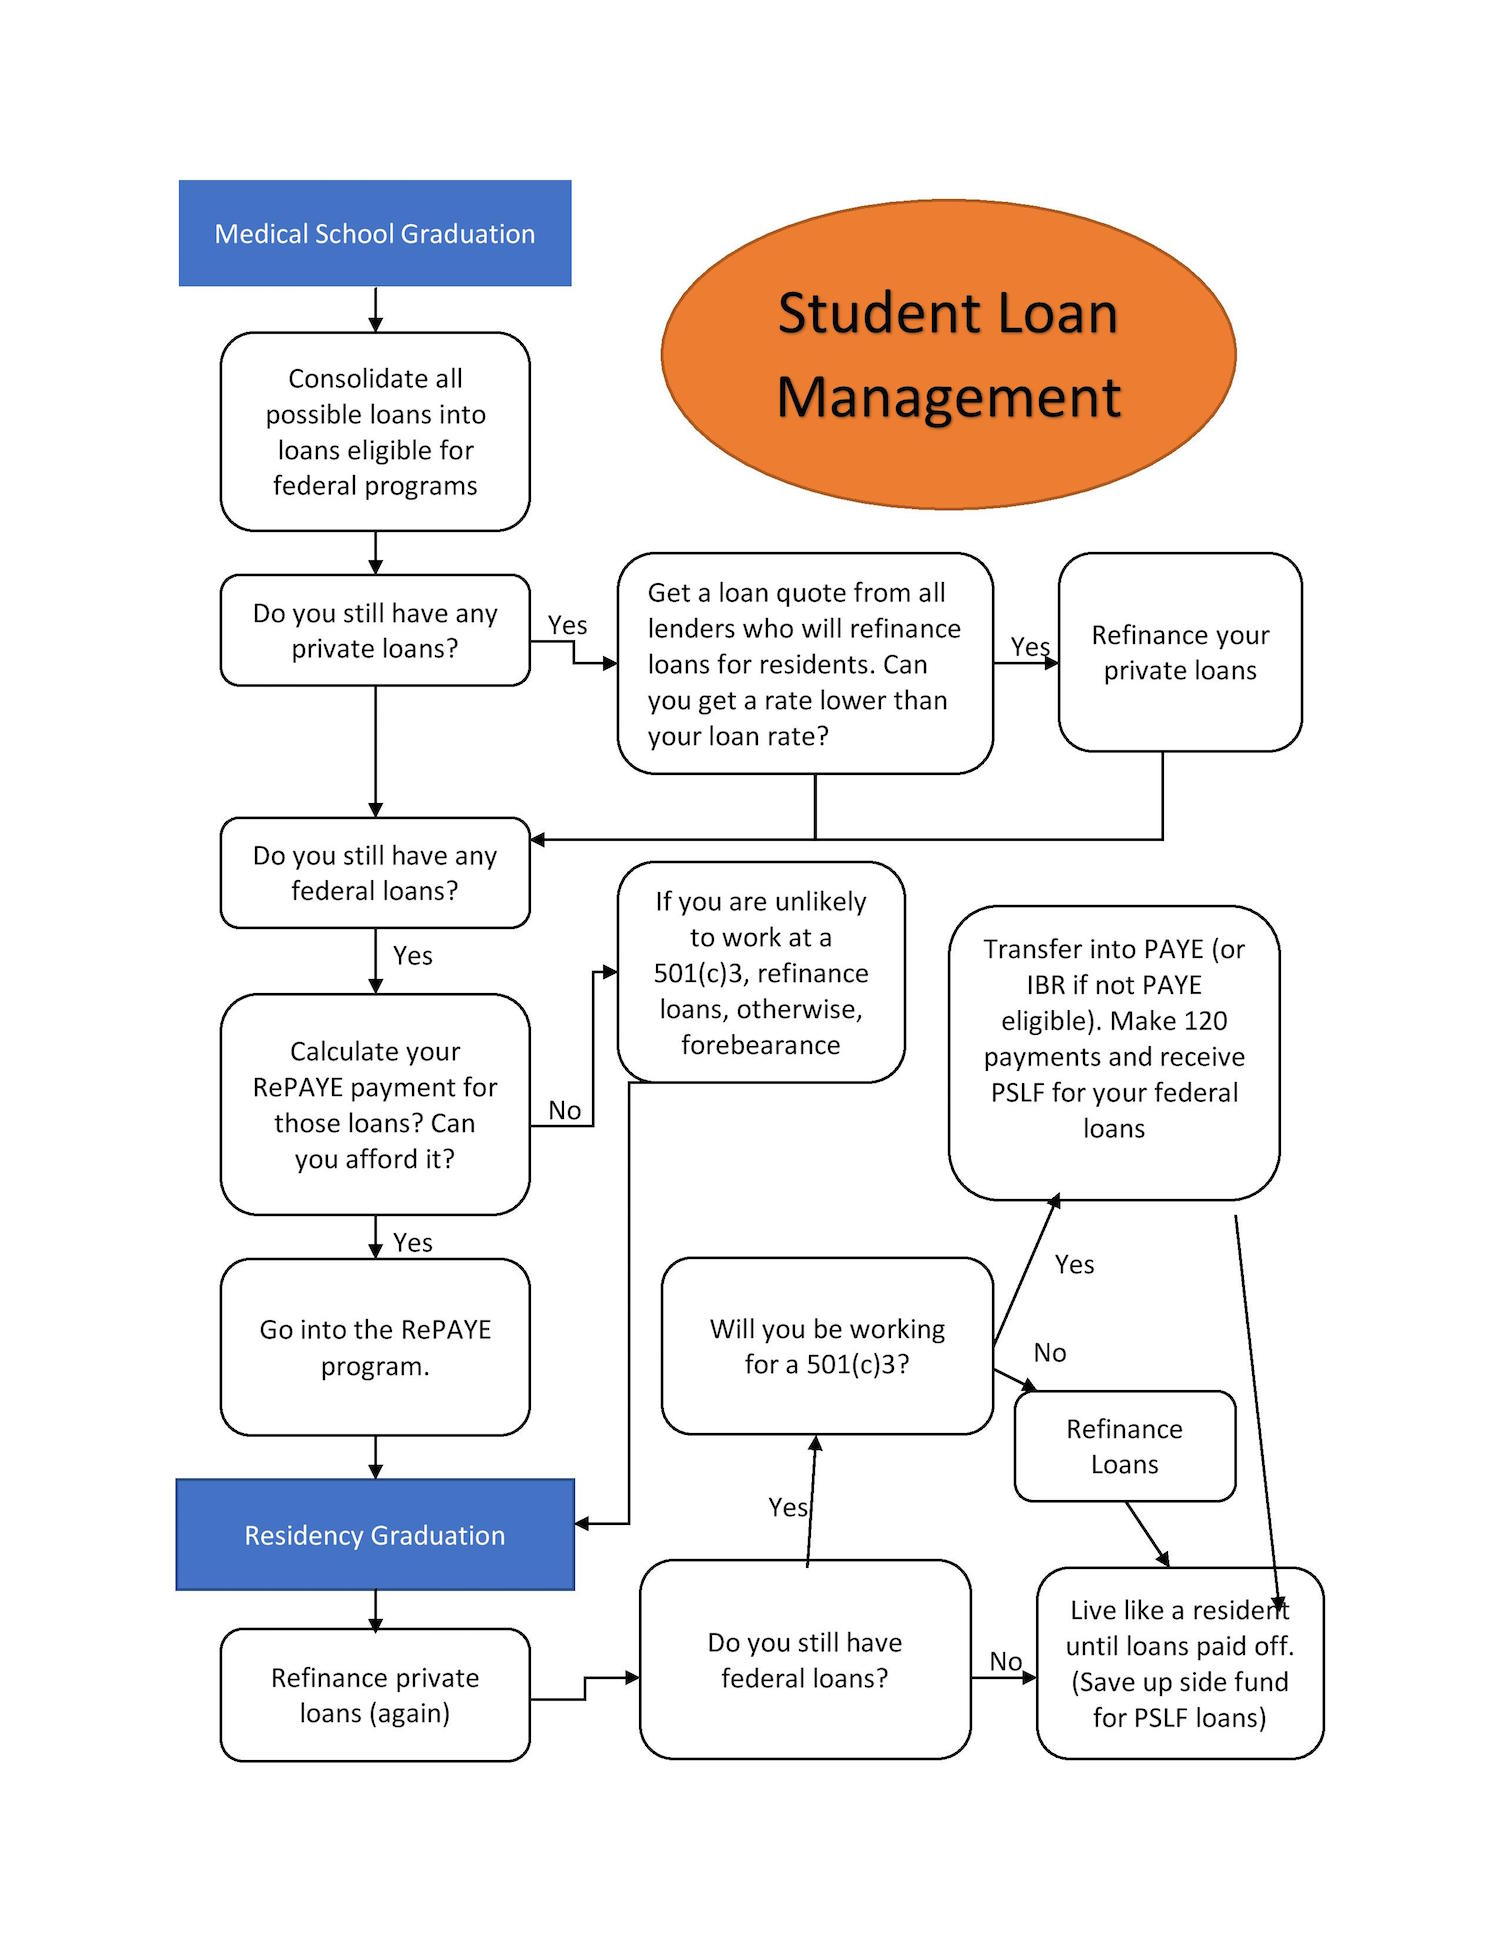 Federal student loans consolidating again